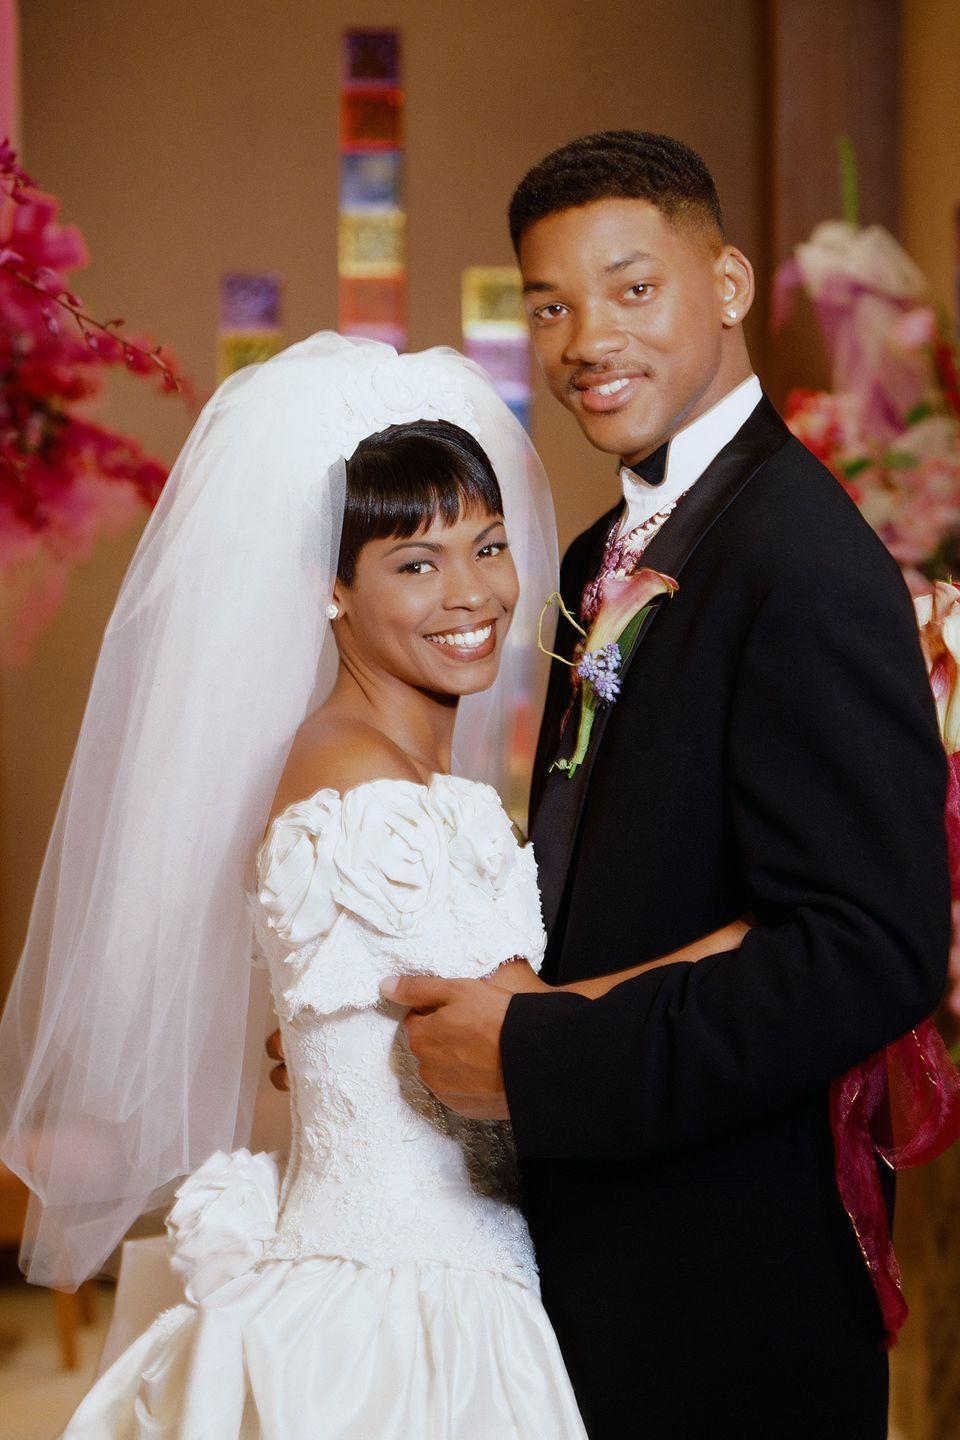 <p>The Fresh Prince was set to abandon his womanizing ways by nearly marrying Lisa in season 5, but the wedding never happened. Although the couple agreed to call it quits, Lisa still looked gorgeous in an off-the-shoulder wedding dress with textured fabric and floral details. </p>